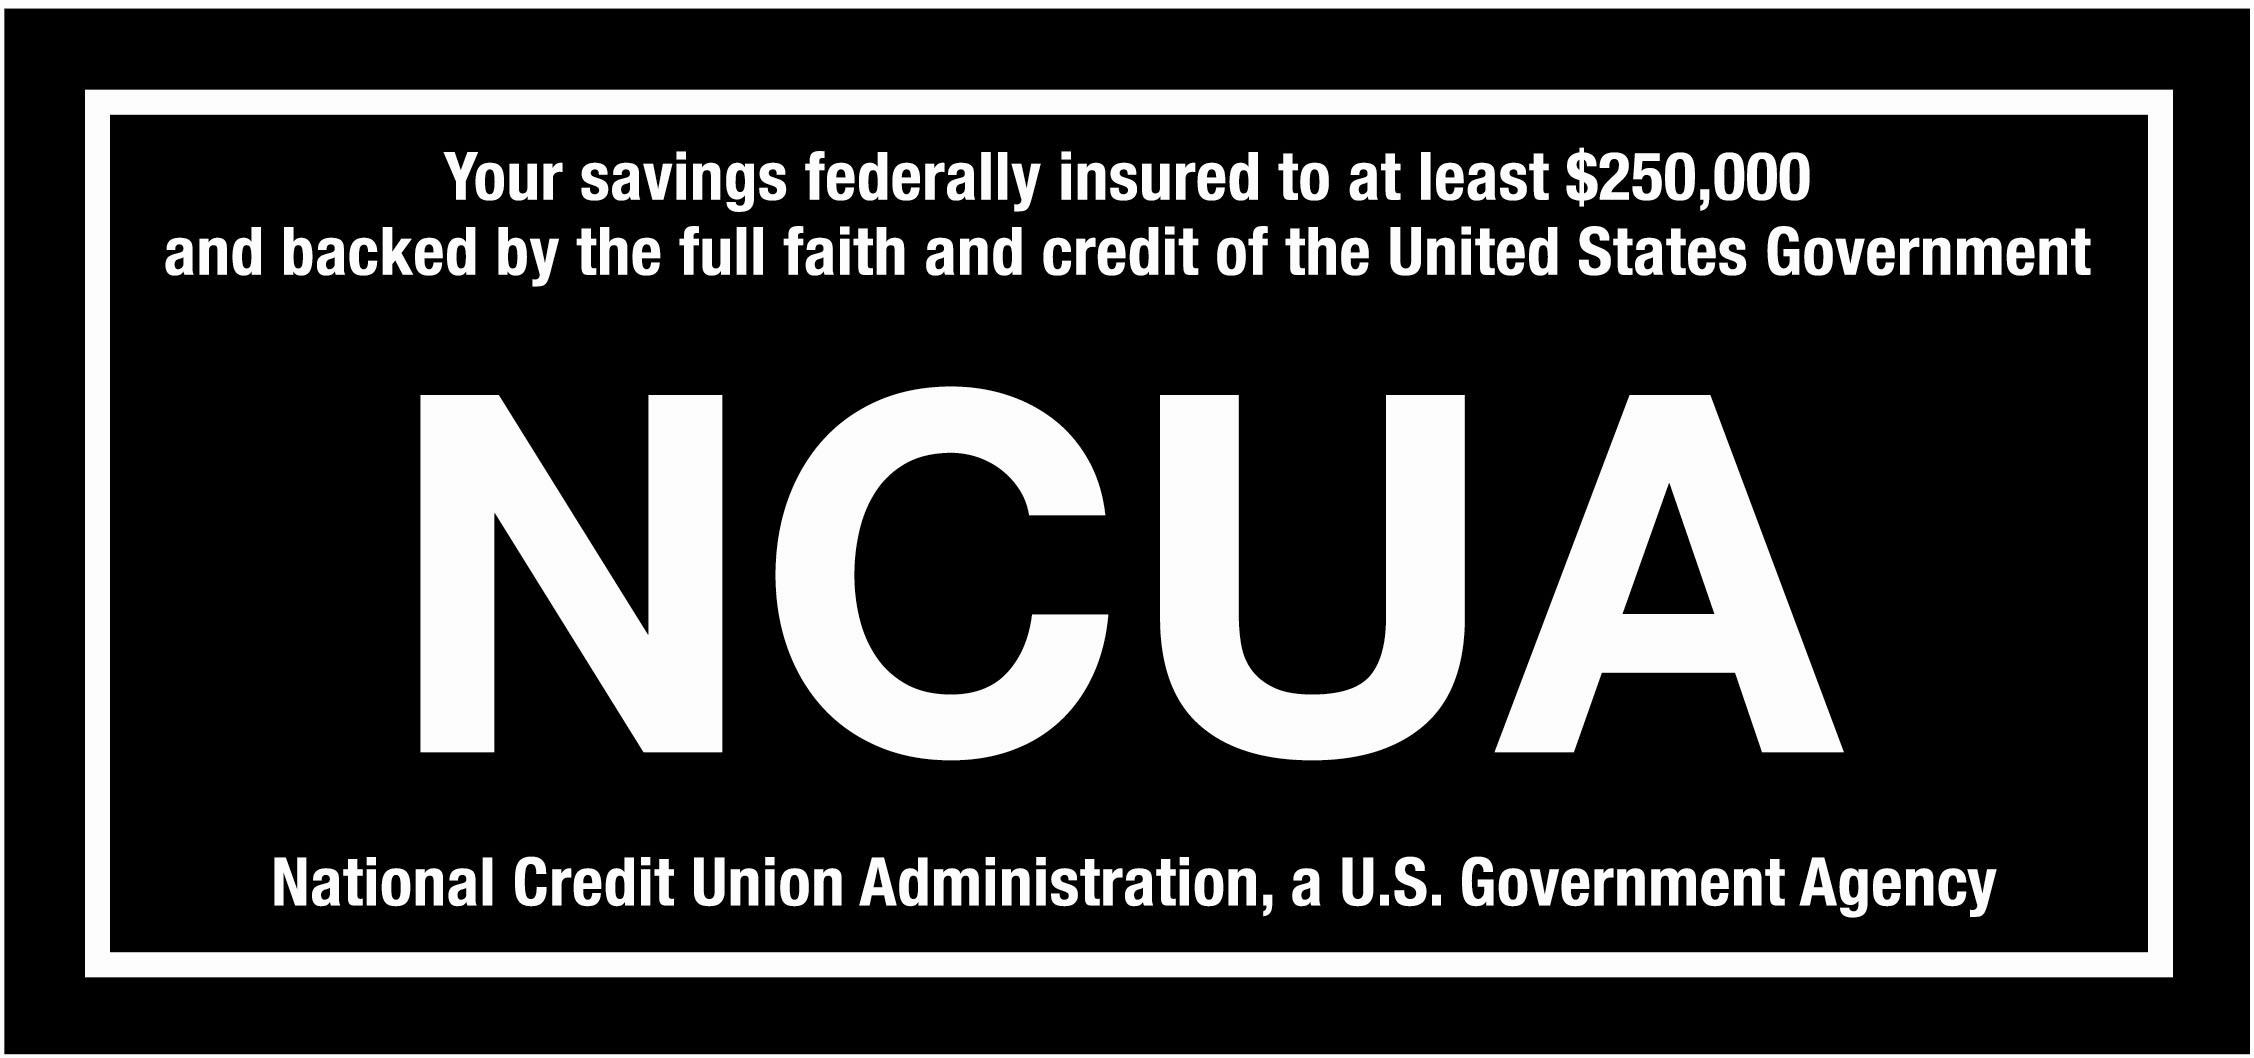 Federally insured up to $250,000 by the National Credit Union Association (NCUA)